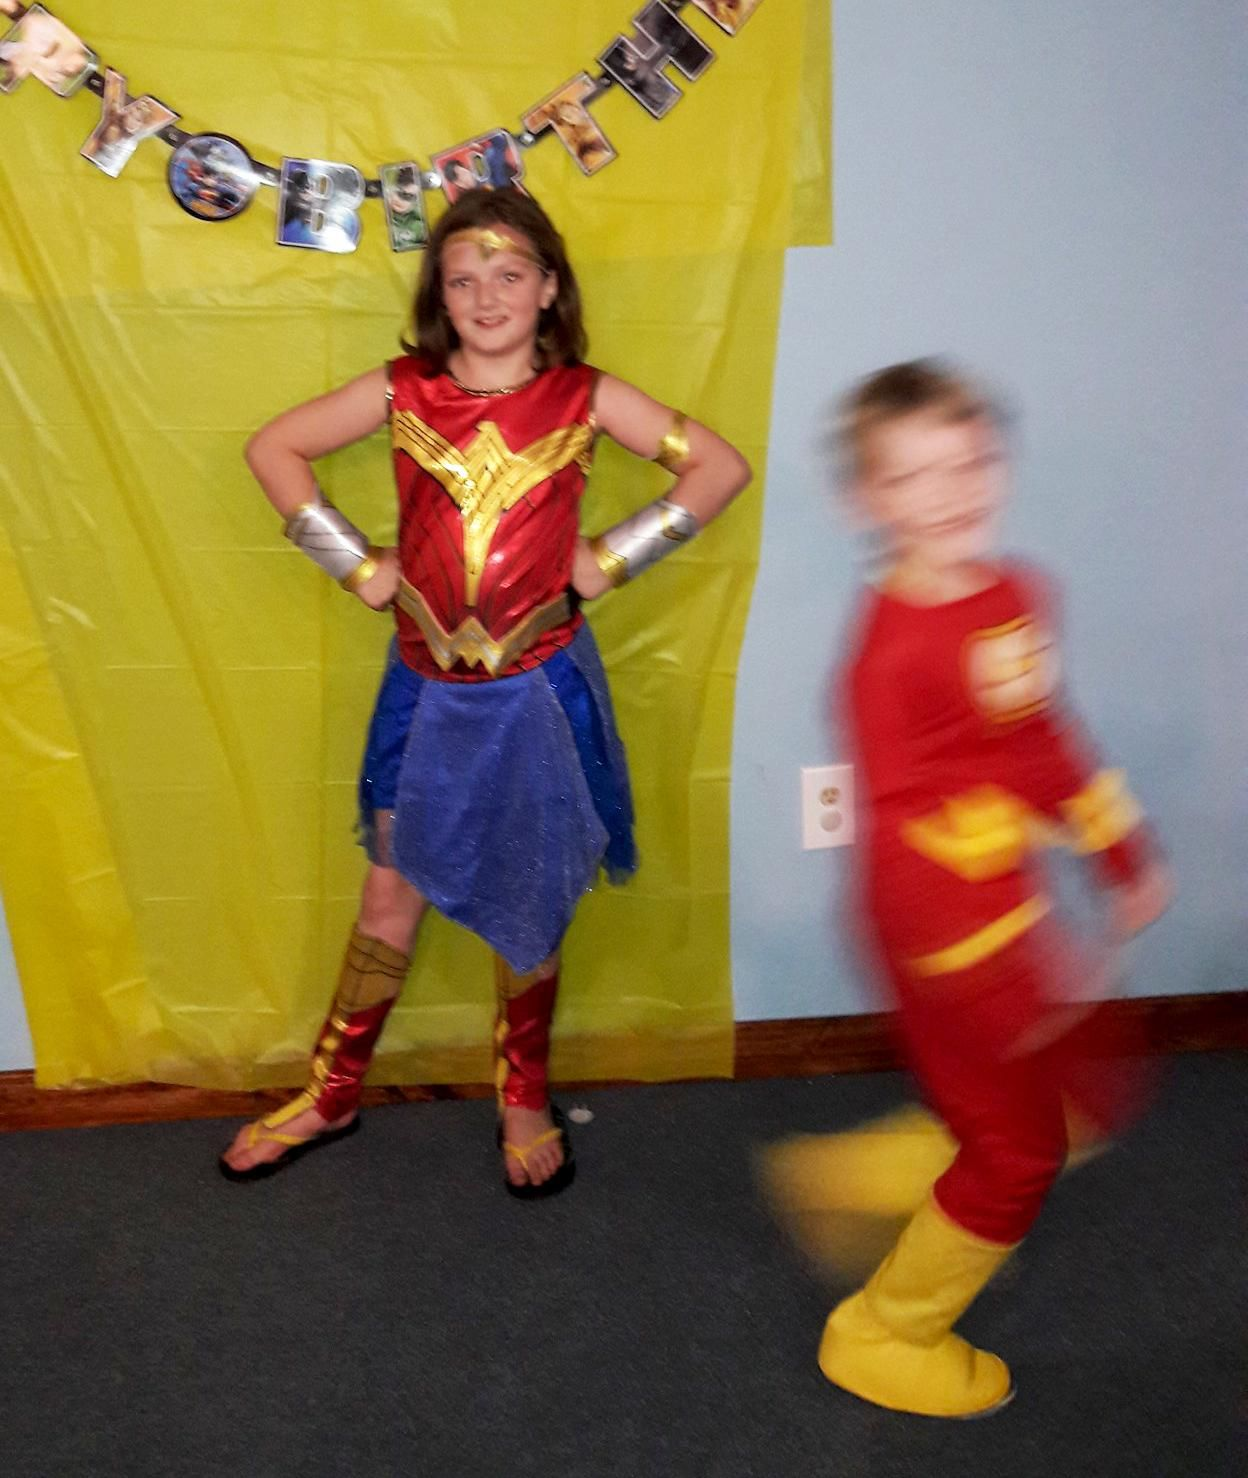 My son, as the Flash, decided to photobomb his sister